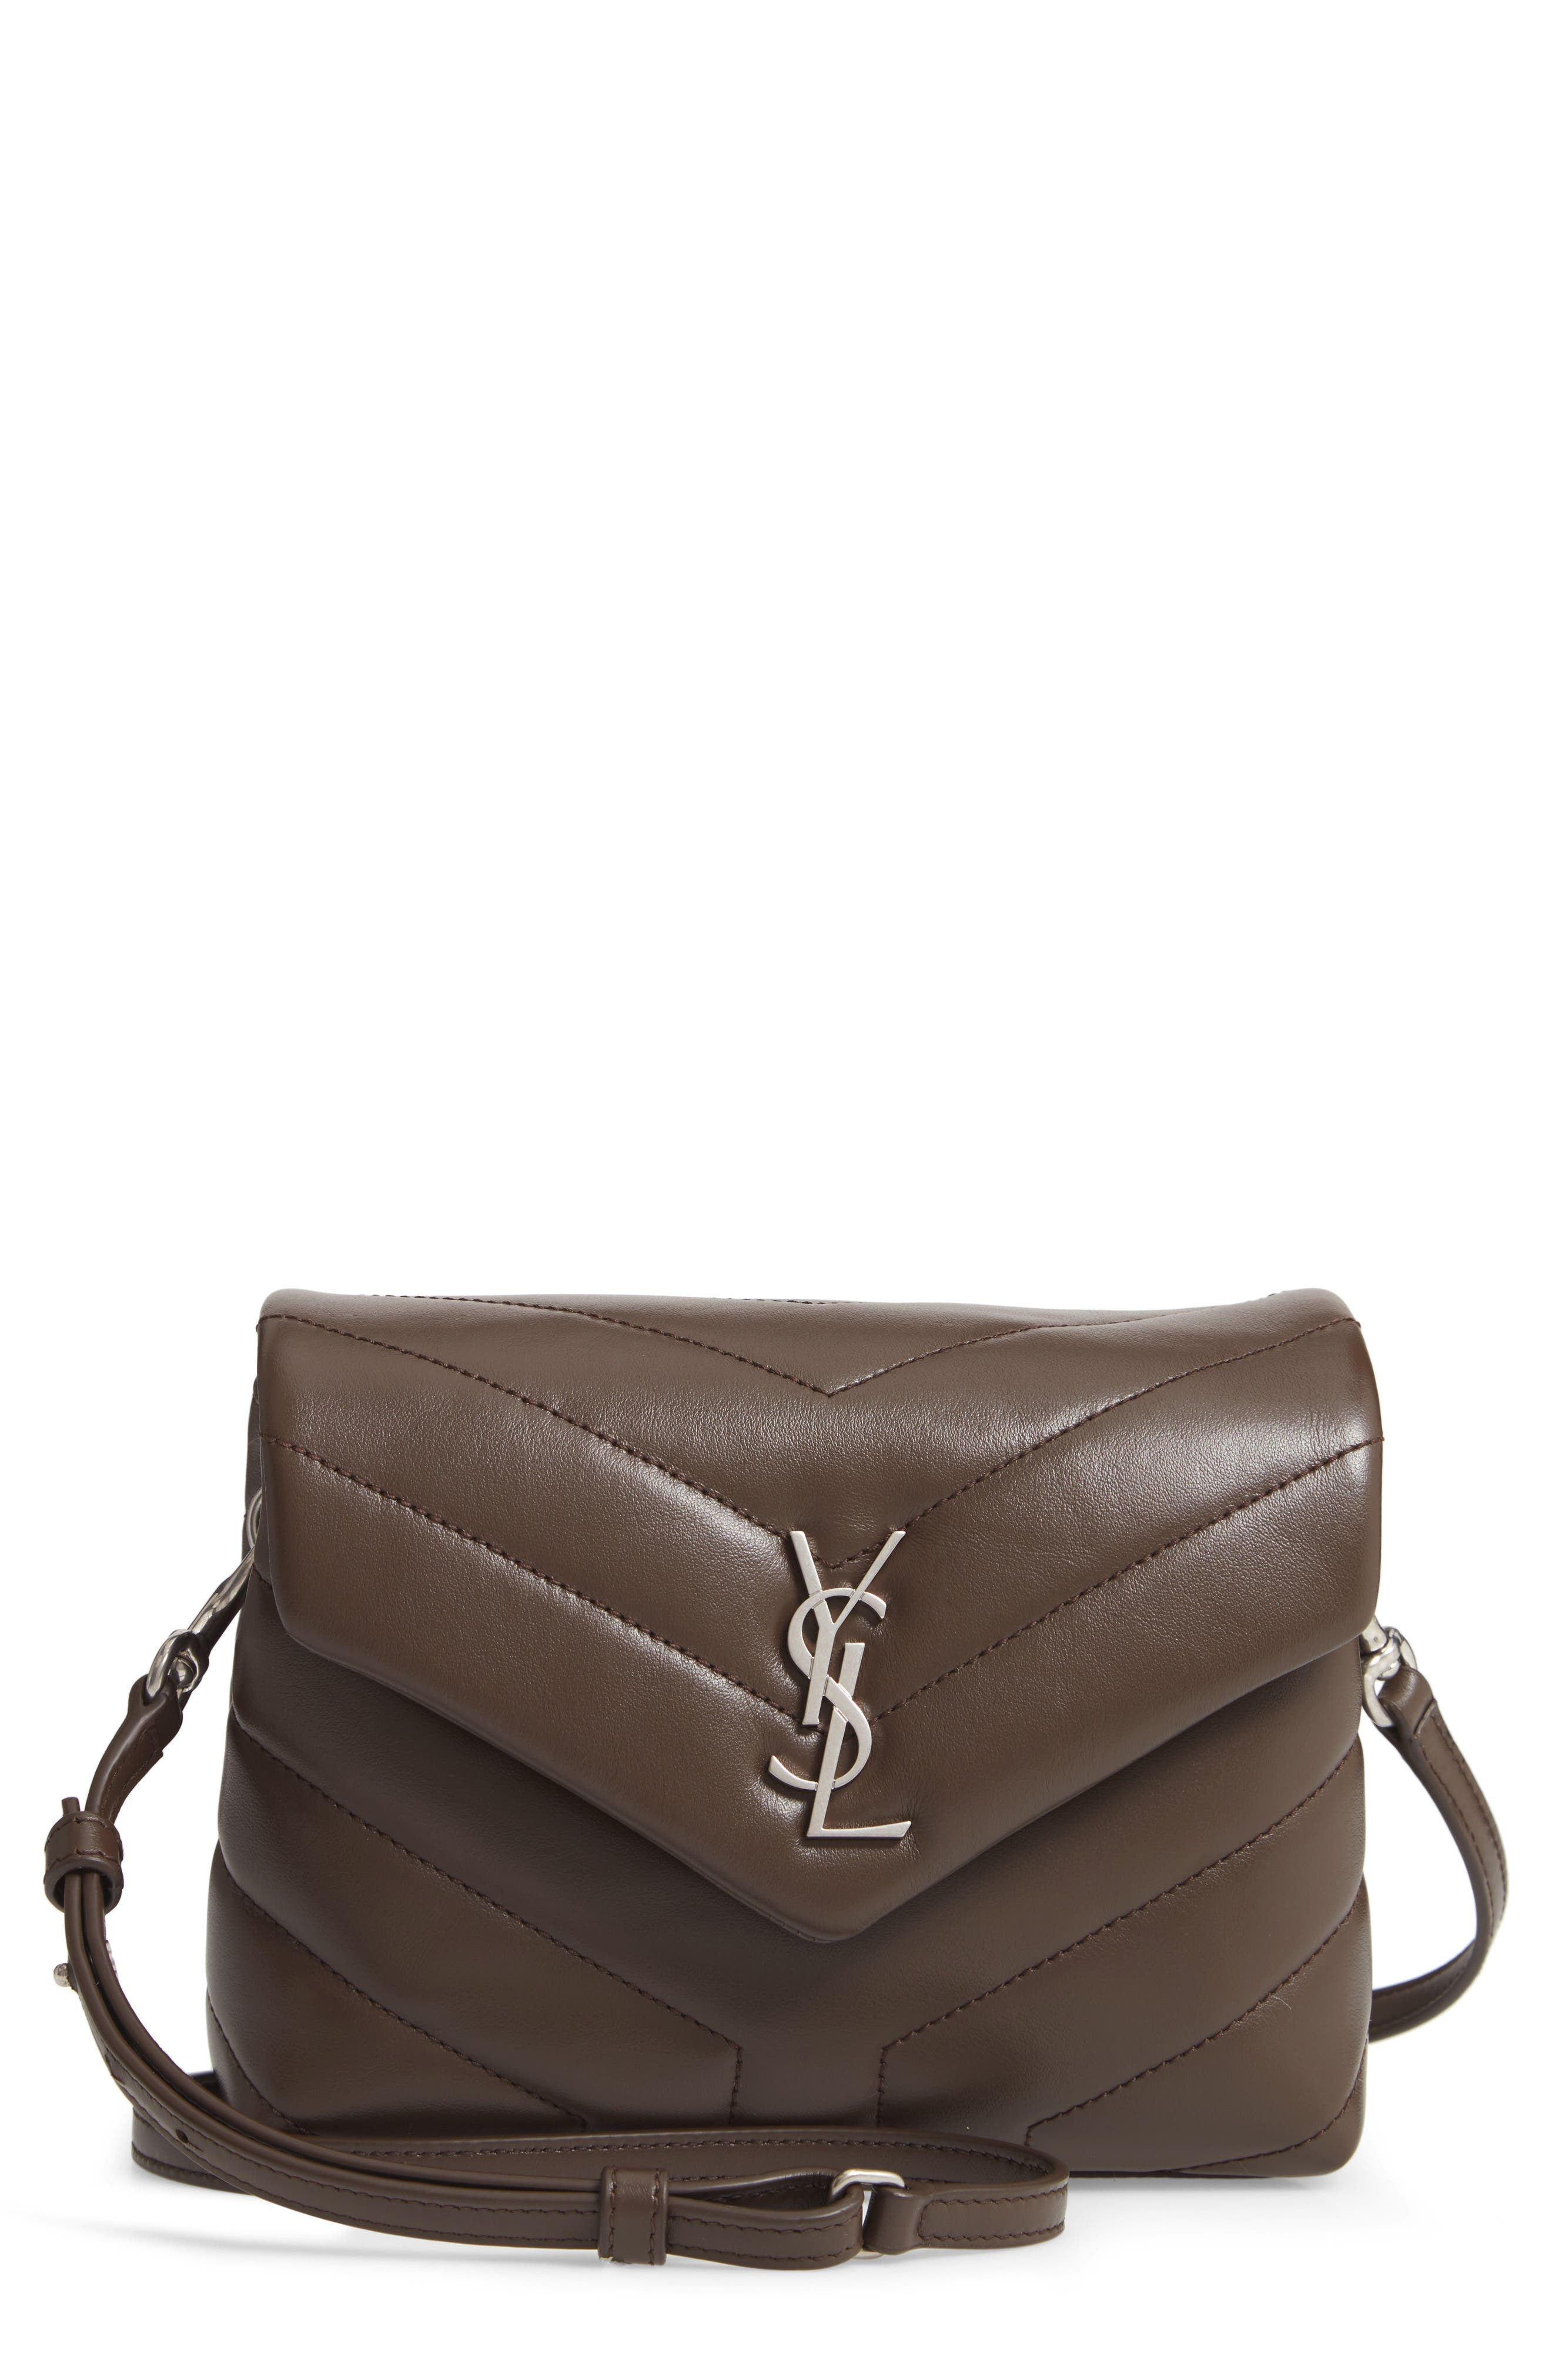 SAINT LAURENT, Toy Loulou Calfskin Leather Crossbody Bag, Main thumbnail 1, color, FAGGIO